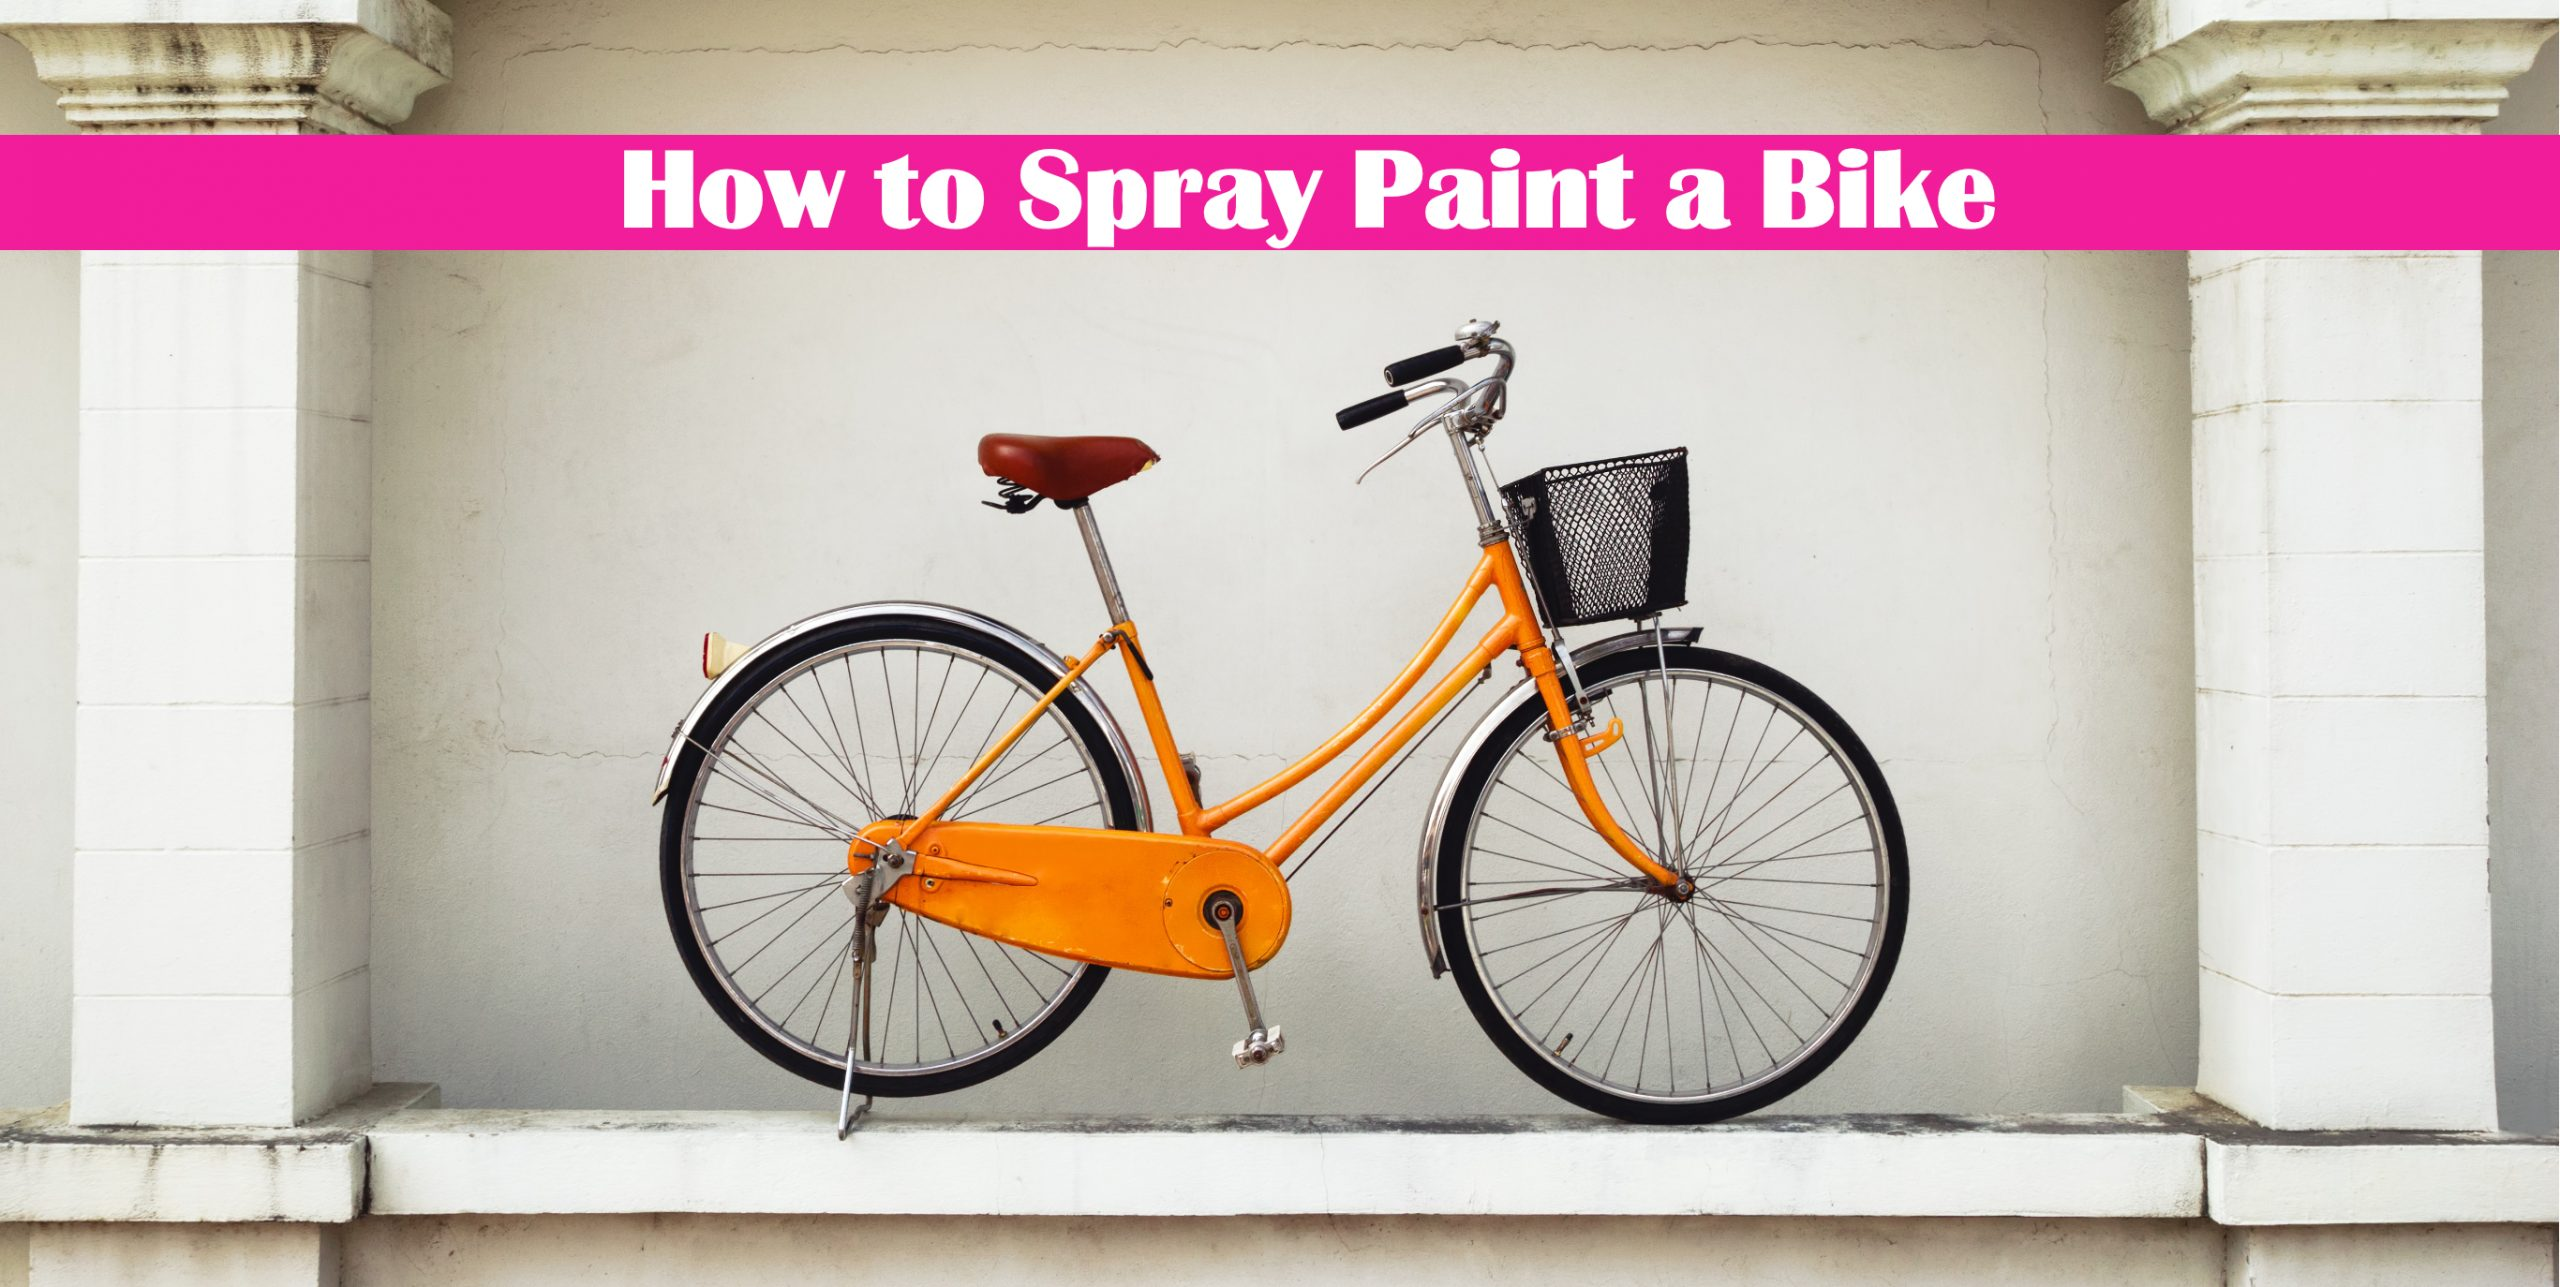 How to Spray Paint a Bike: Avoid Common Mistakes